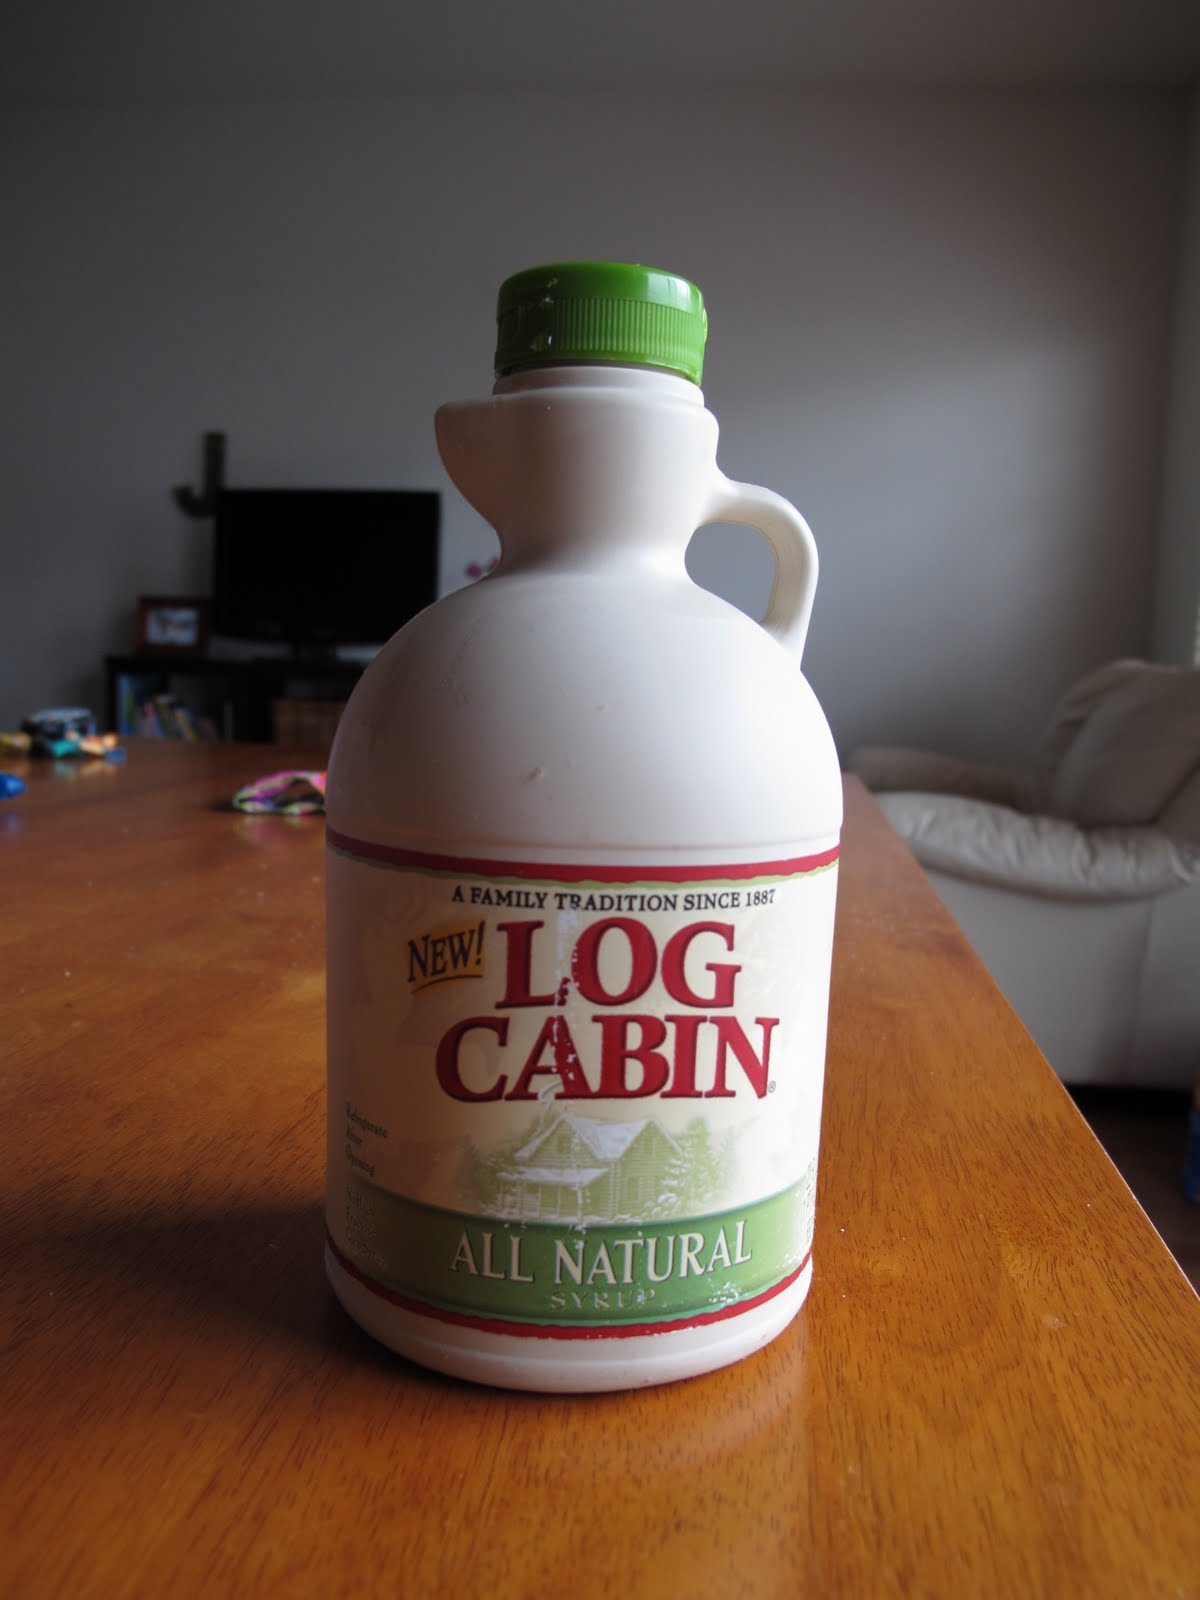 New Log Cabin All Natural Pancake Syrup Review